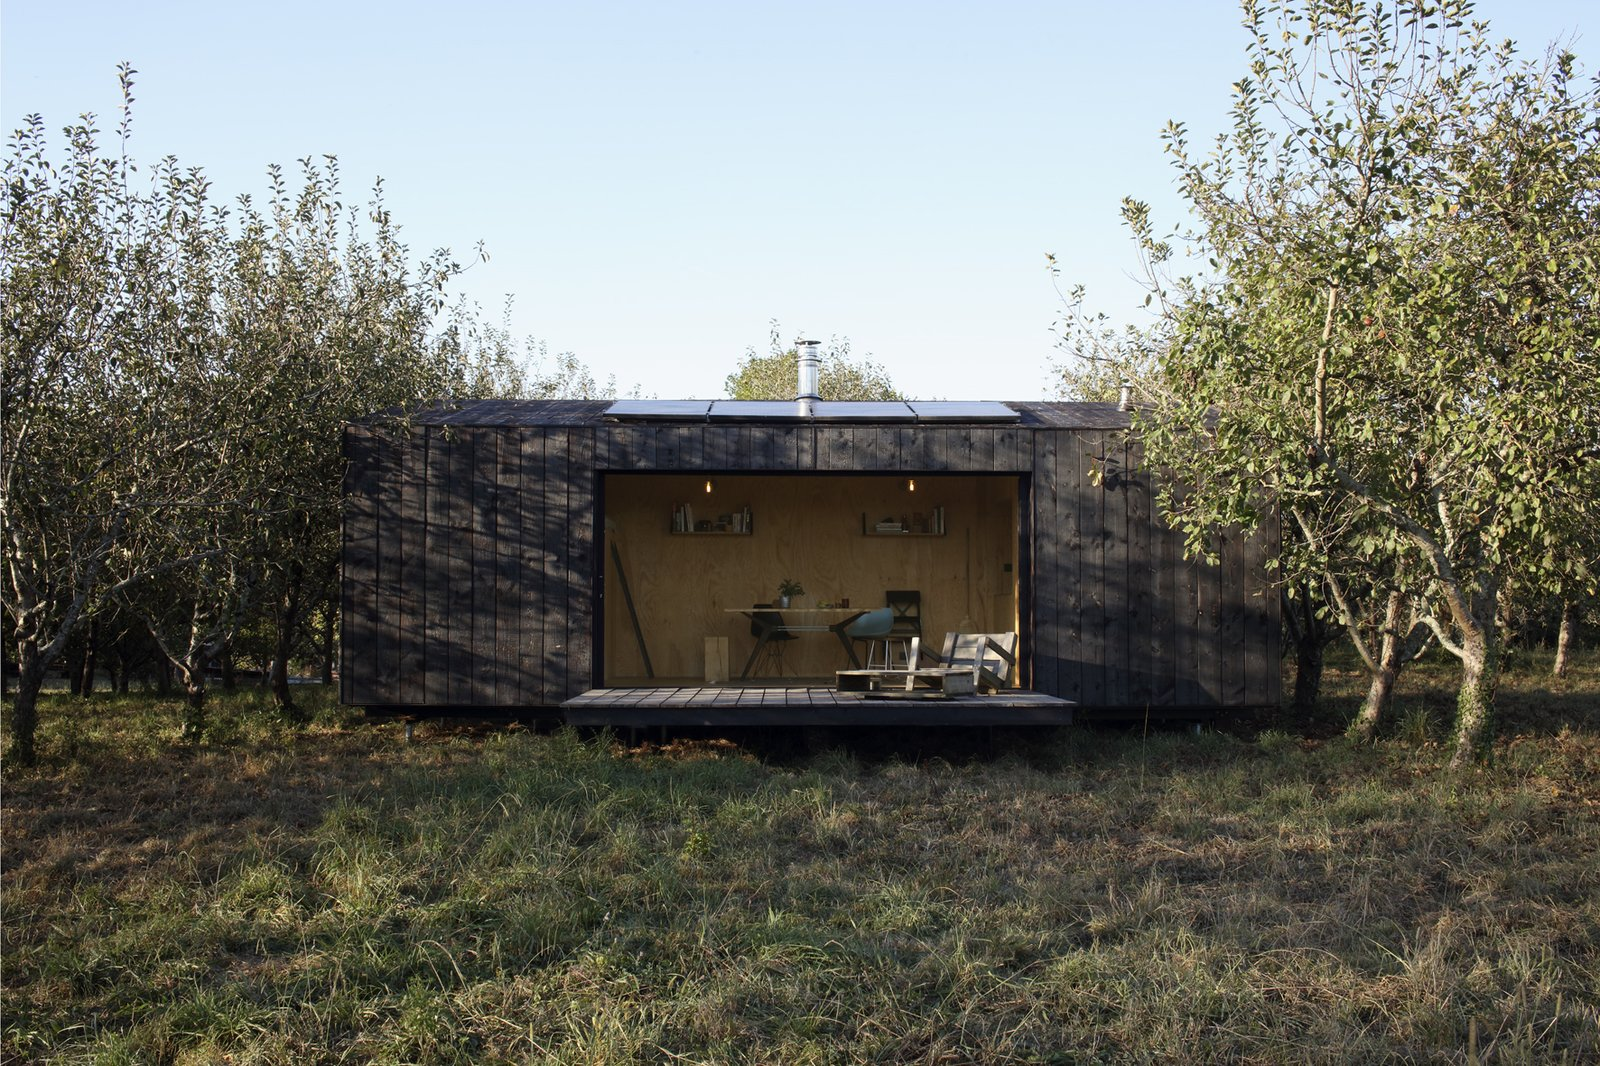 Exterior, Prefab Building Type, Shingles Roof Material, Wood Siding Material, Shed RoofLine, and Cabin Building Type Heva was designed by A6A and manufactured by My Little Loft.  A spacious deck and large glass doors allow for seamless indoor/outdoor living.  Photos from heva